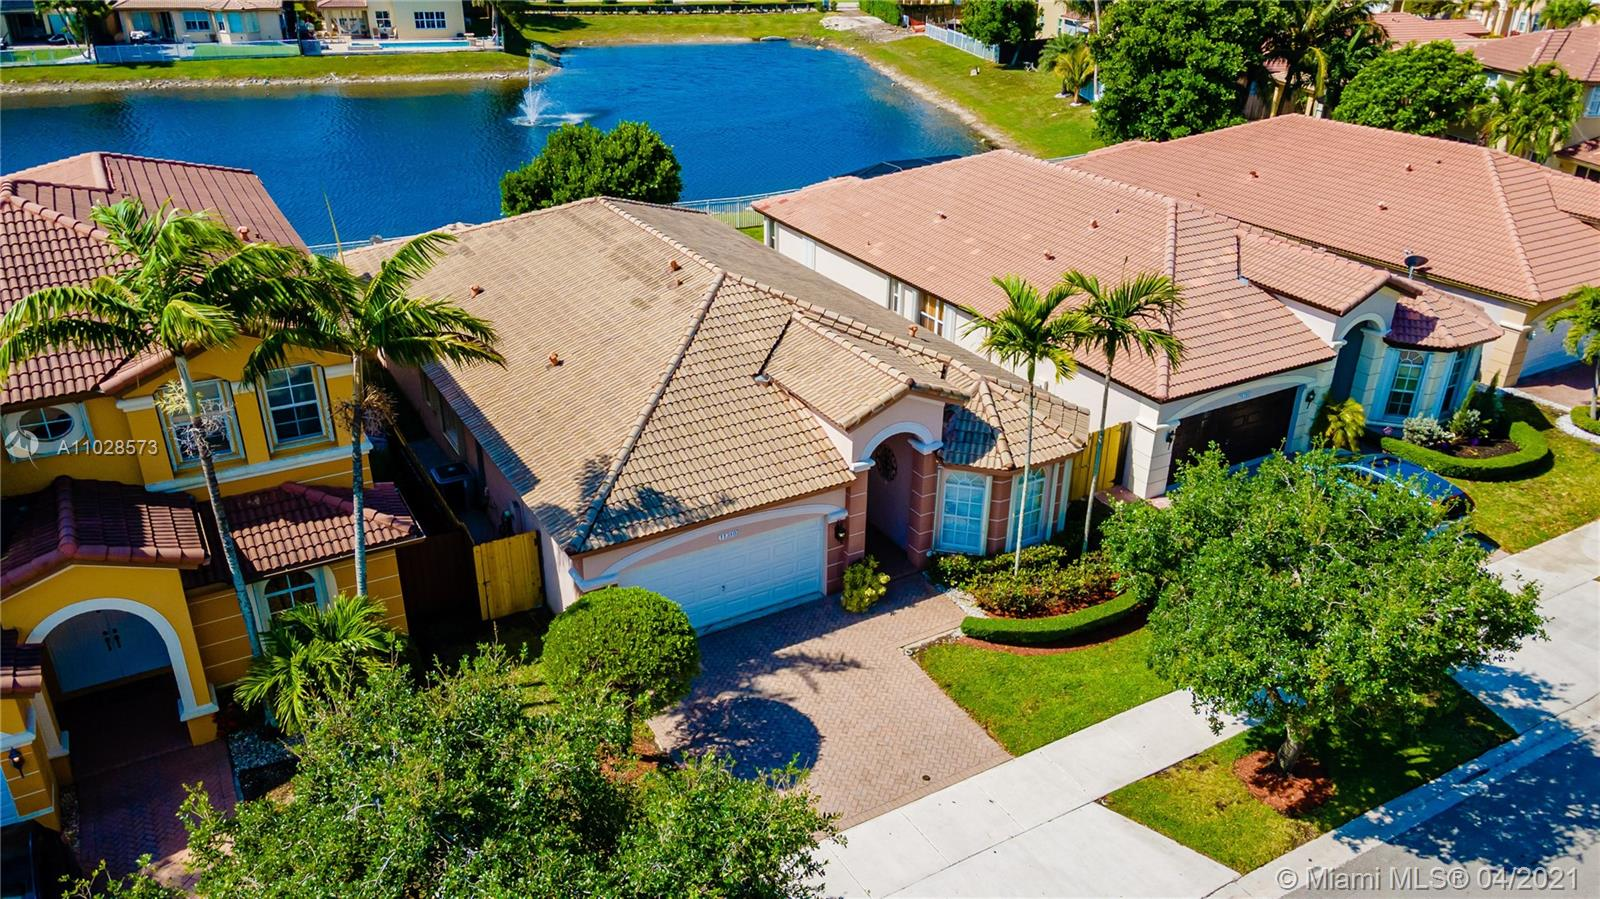 Islands At Doral - 11310 NW 79th Ln, Doral, FL 33178